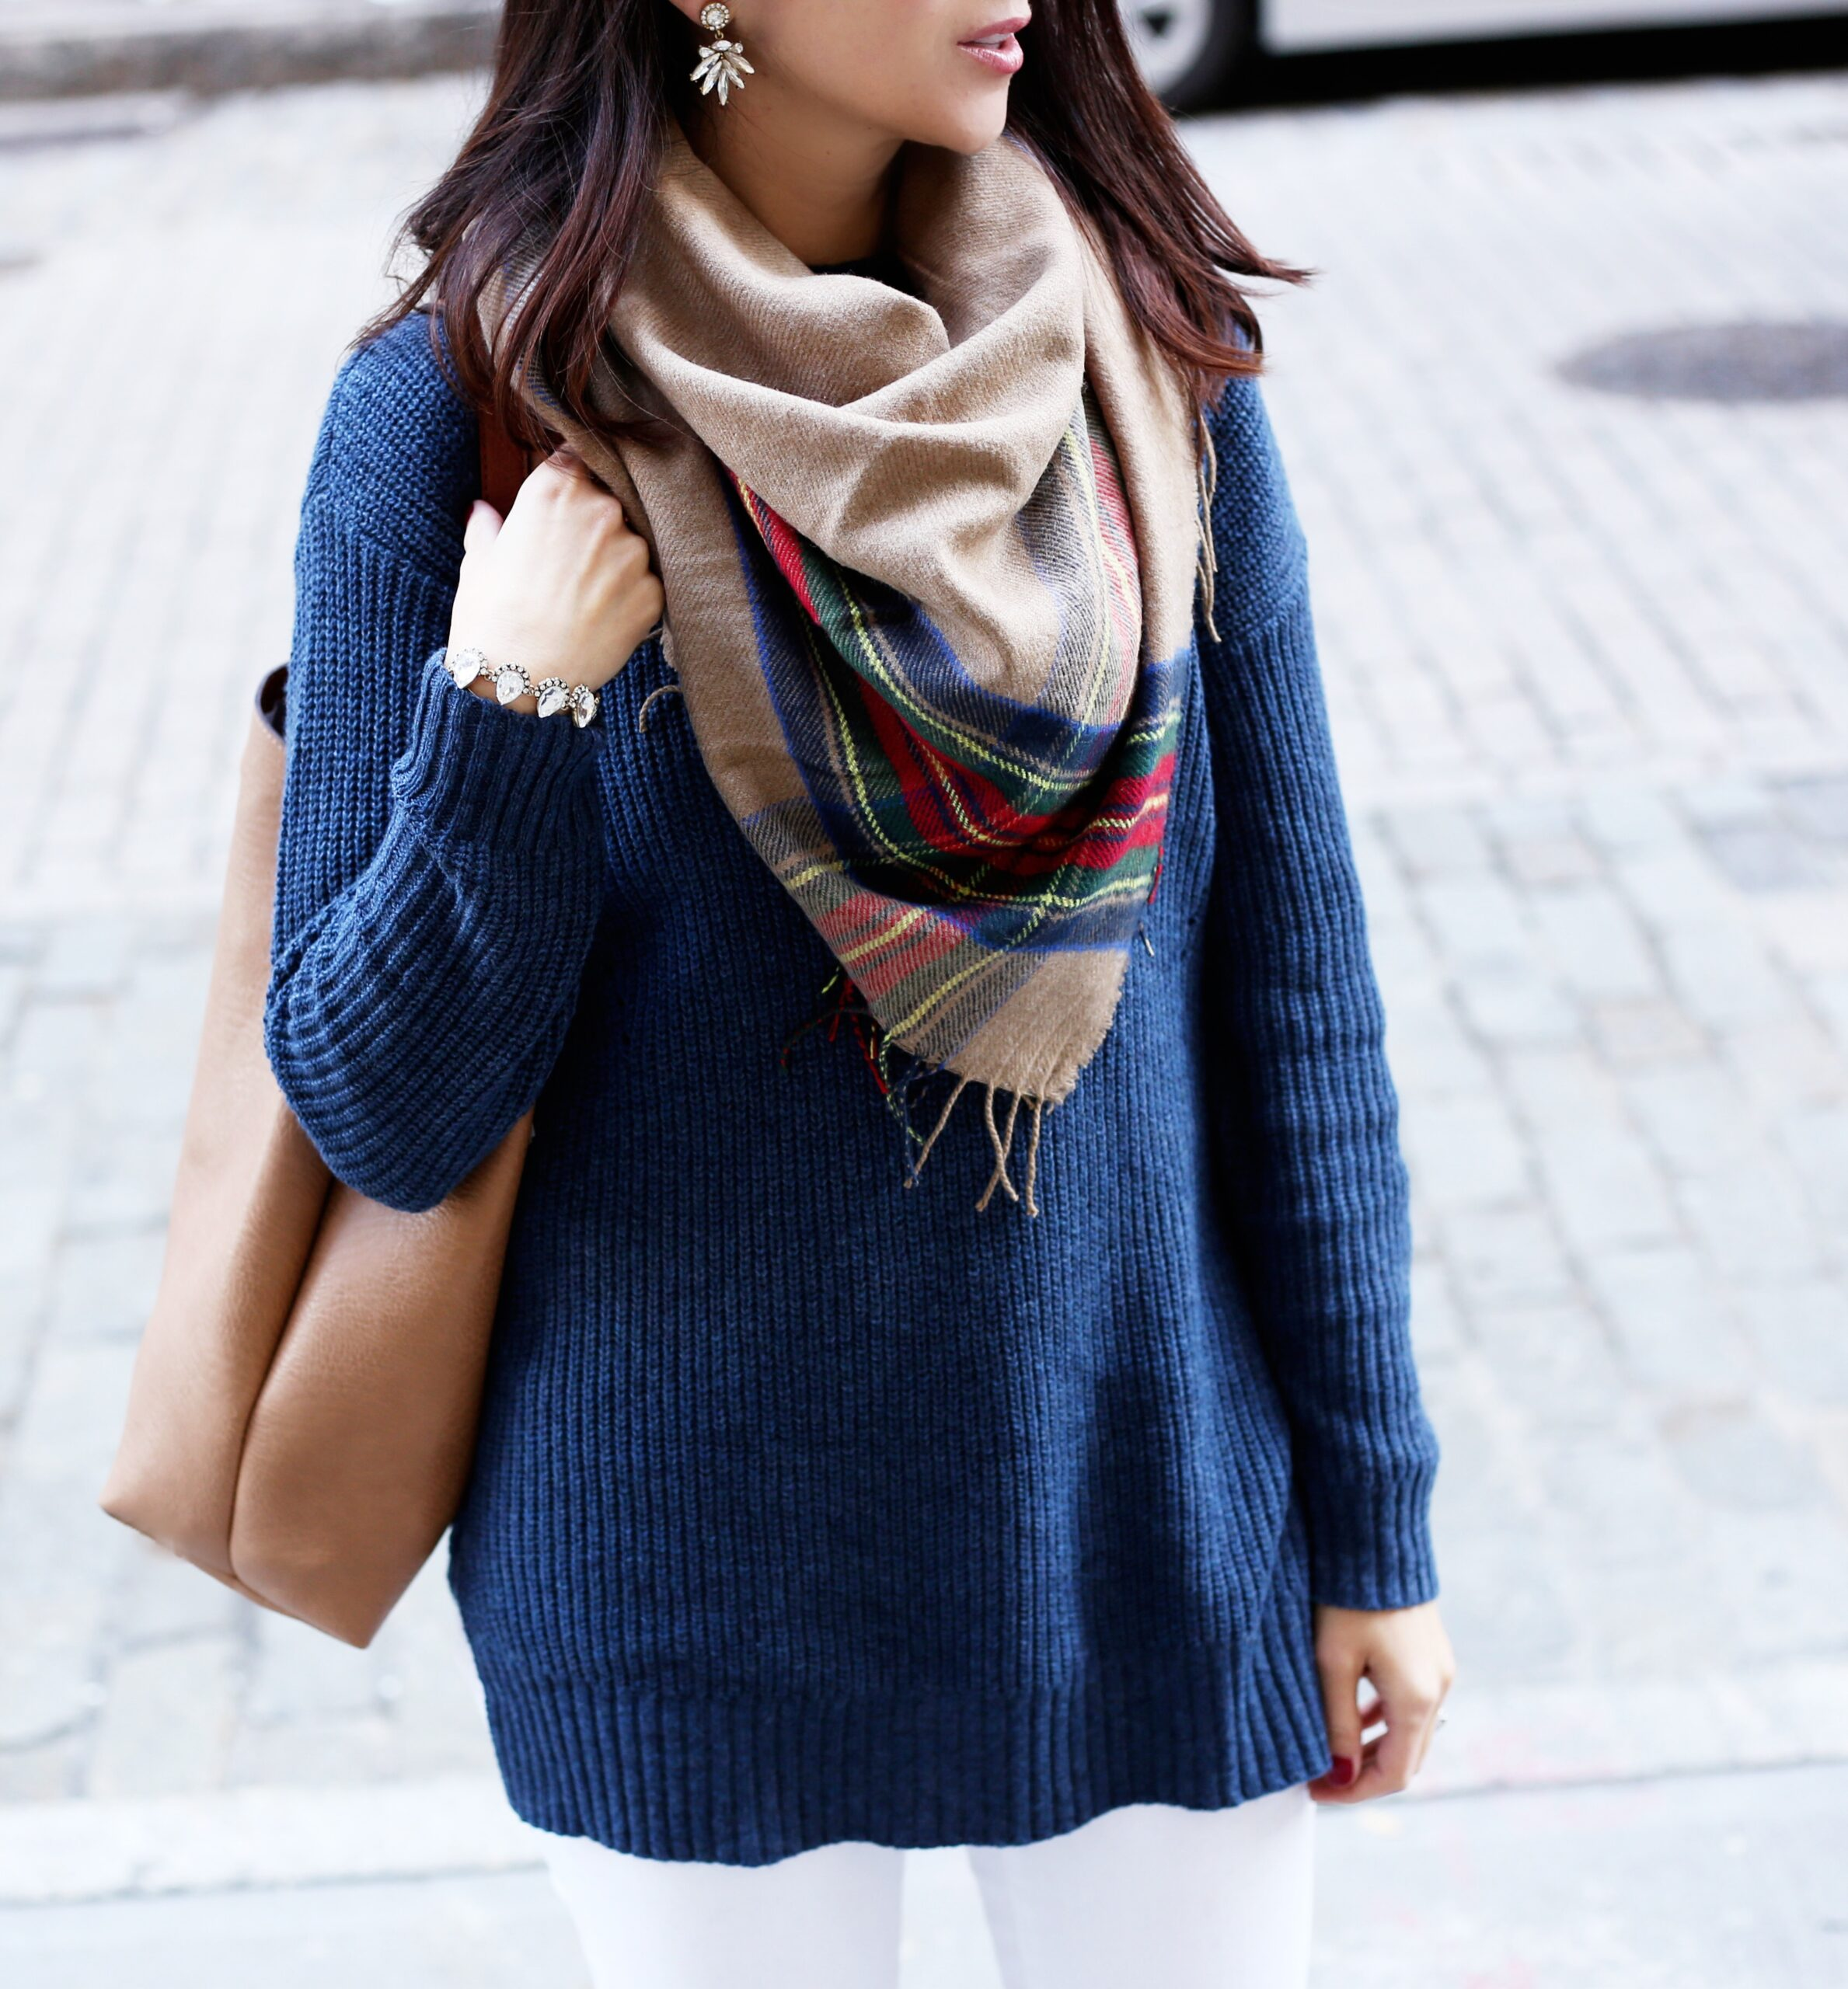 style blogger Anna Monteiro wearing BP. plaid blanket scarf from Nordstrom, J.crew toothpick jeans in white and a Street Level reversible tote